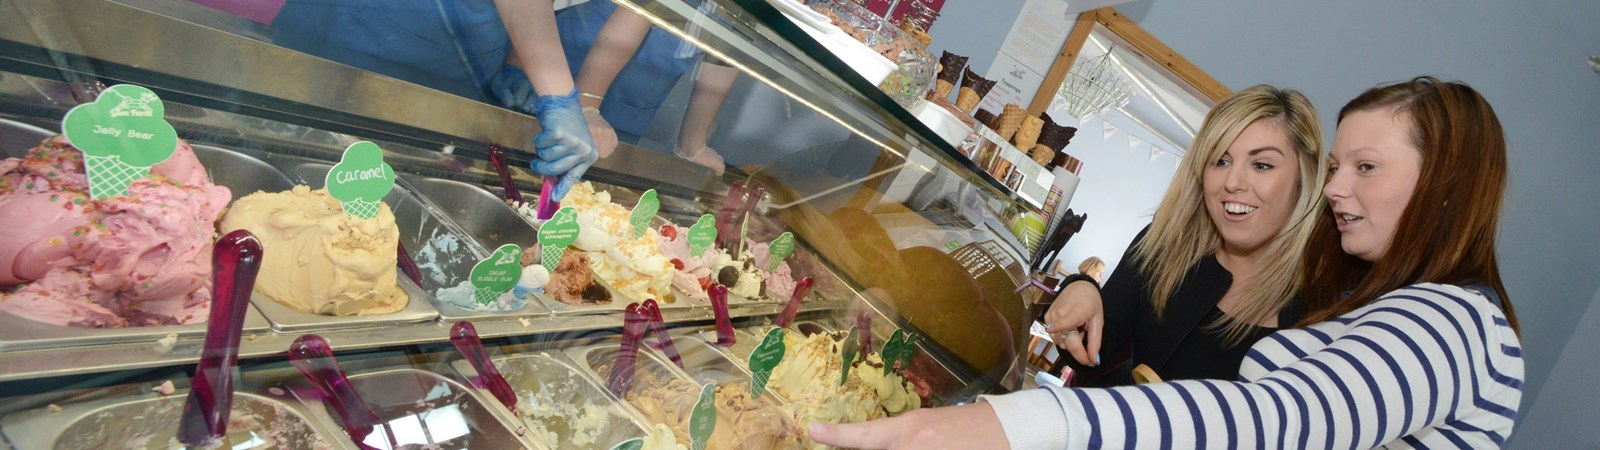 Milkbarn Ice Cream Parlour, Falkirk|Icecream|Things to do in Falkirk